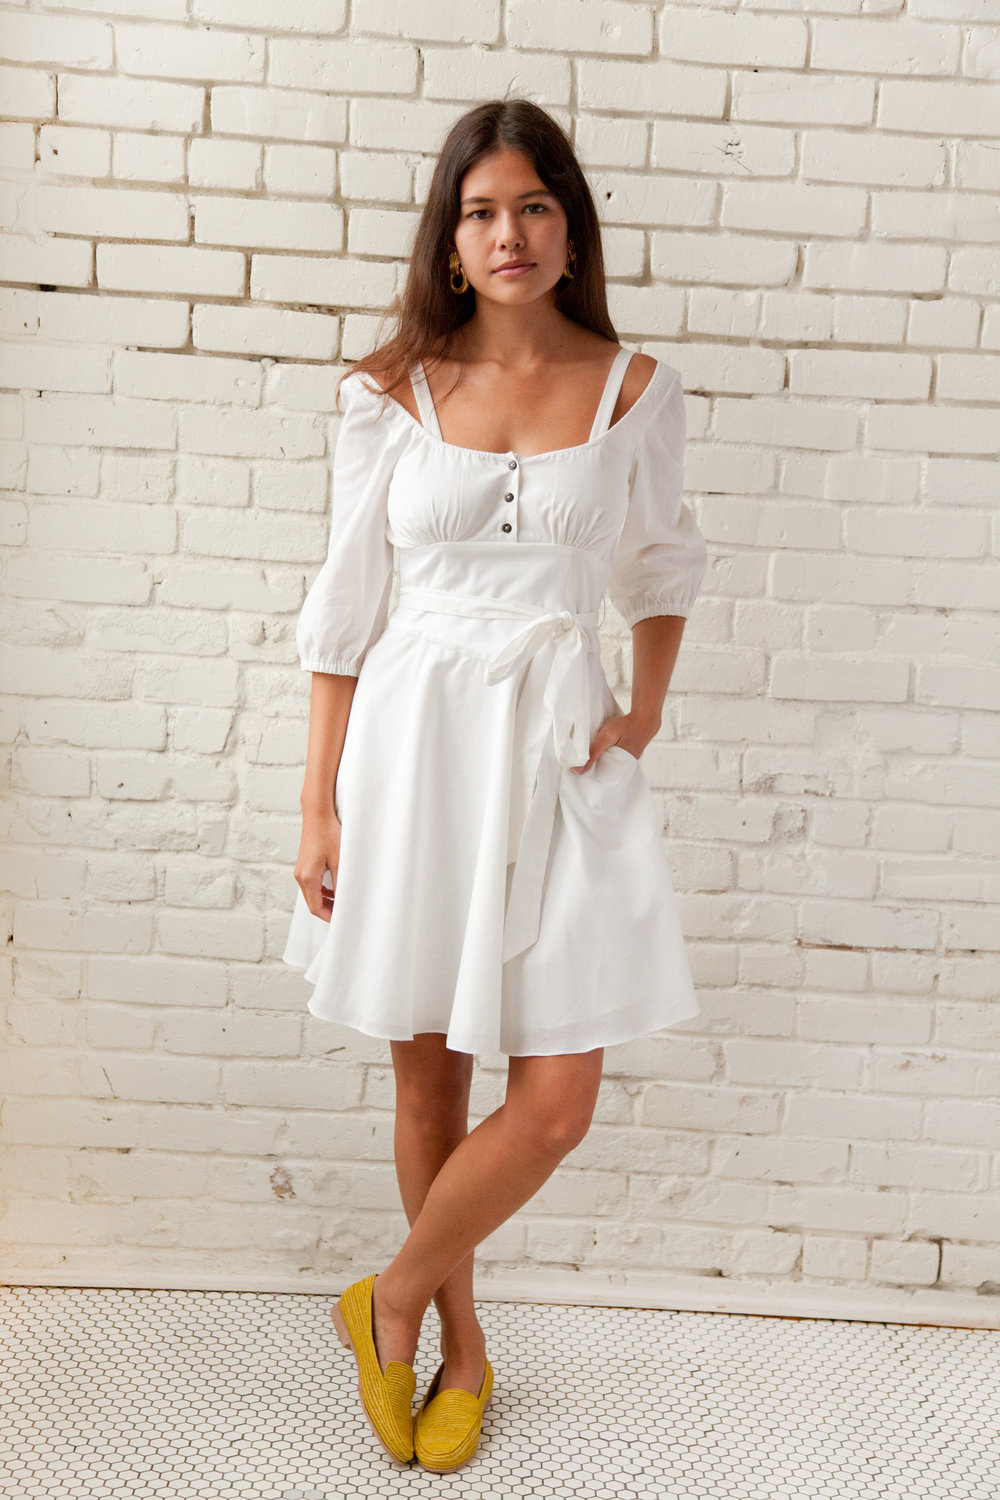 Plante Primrose Sun Dress in White Cotton